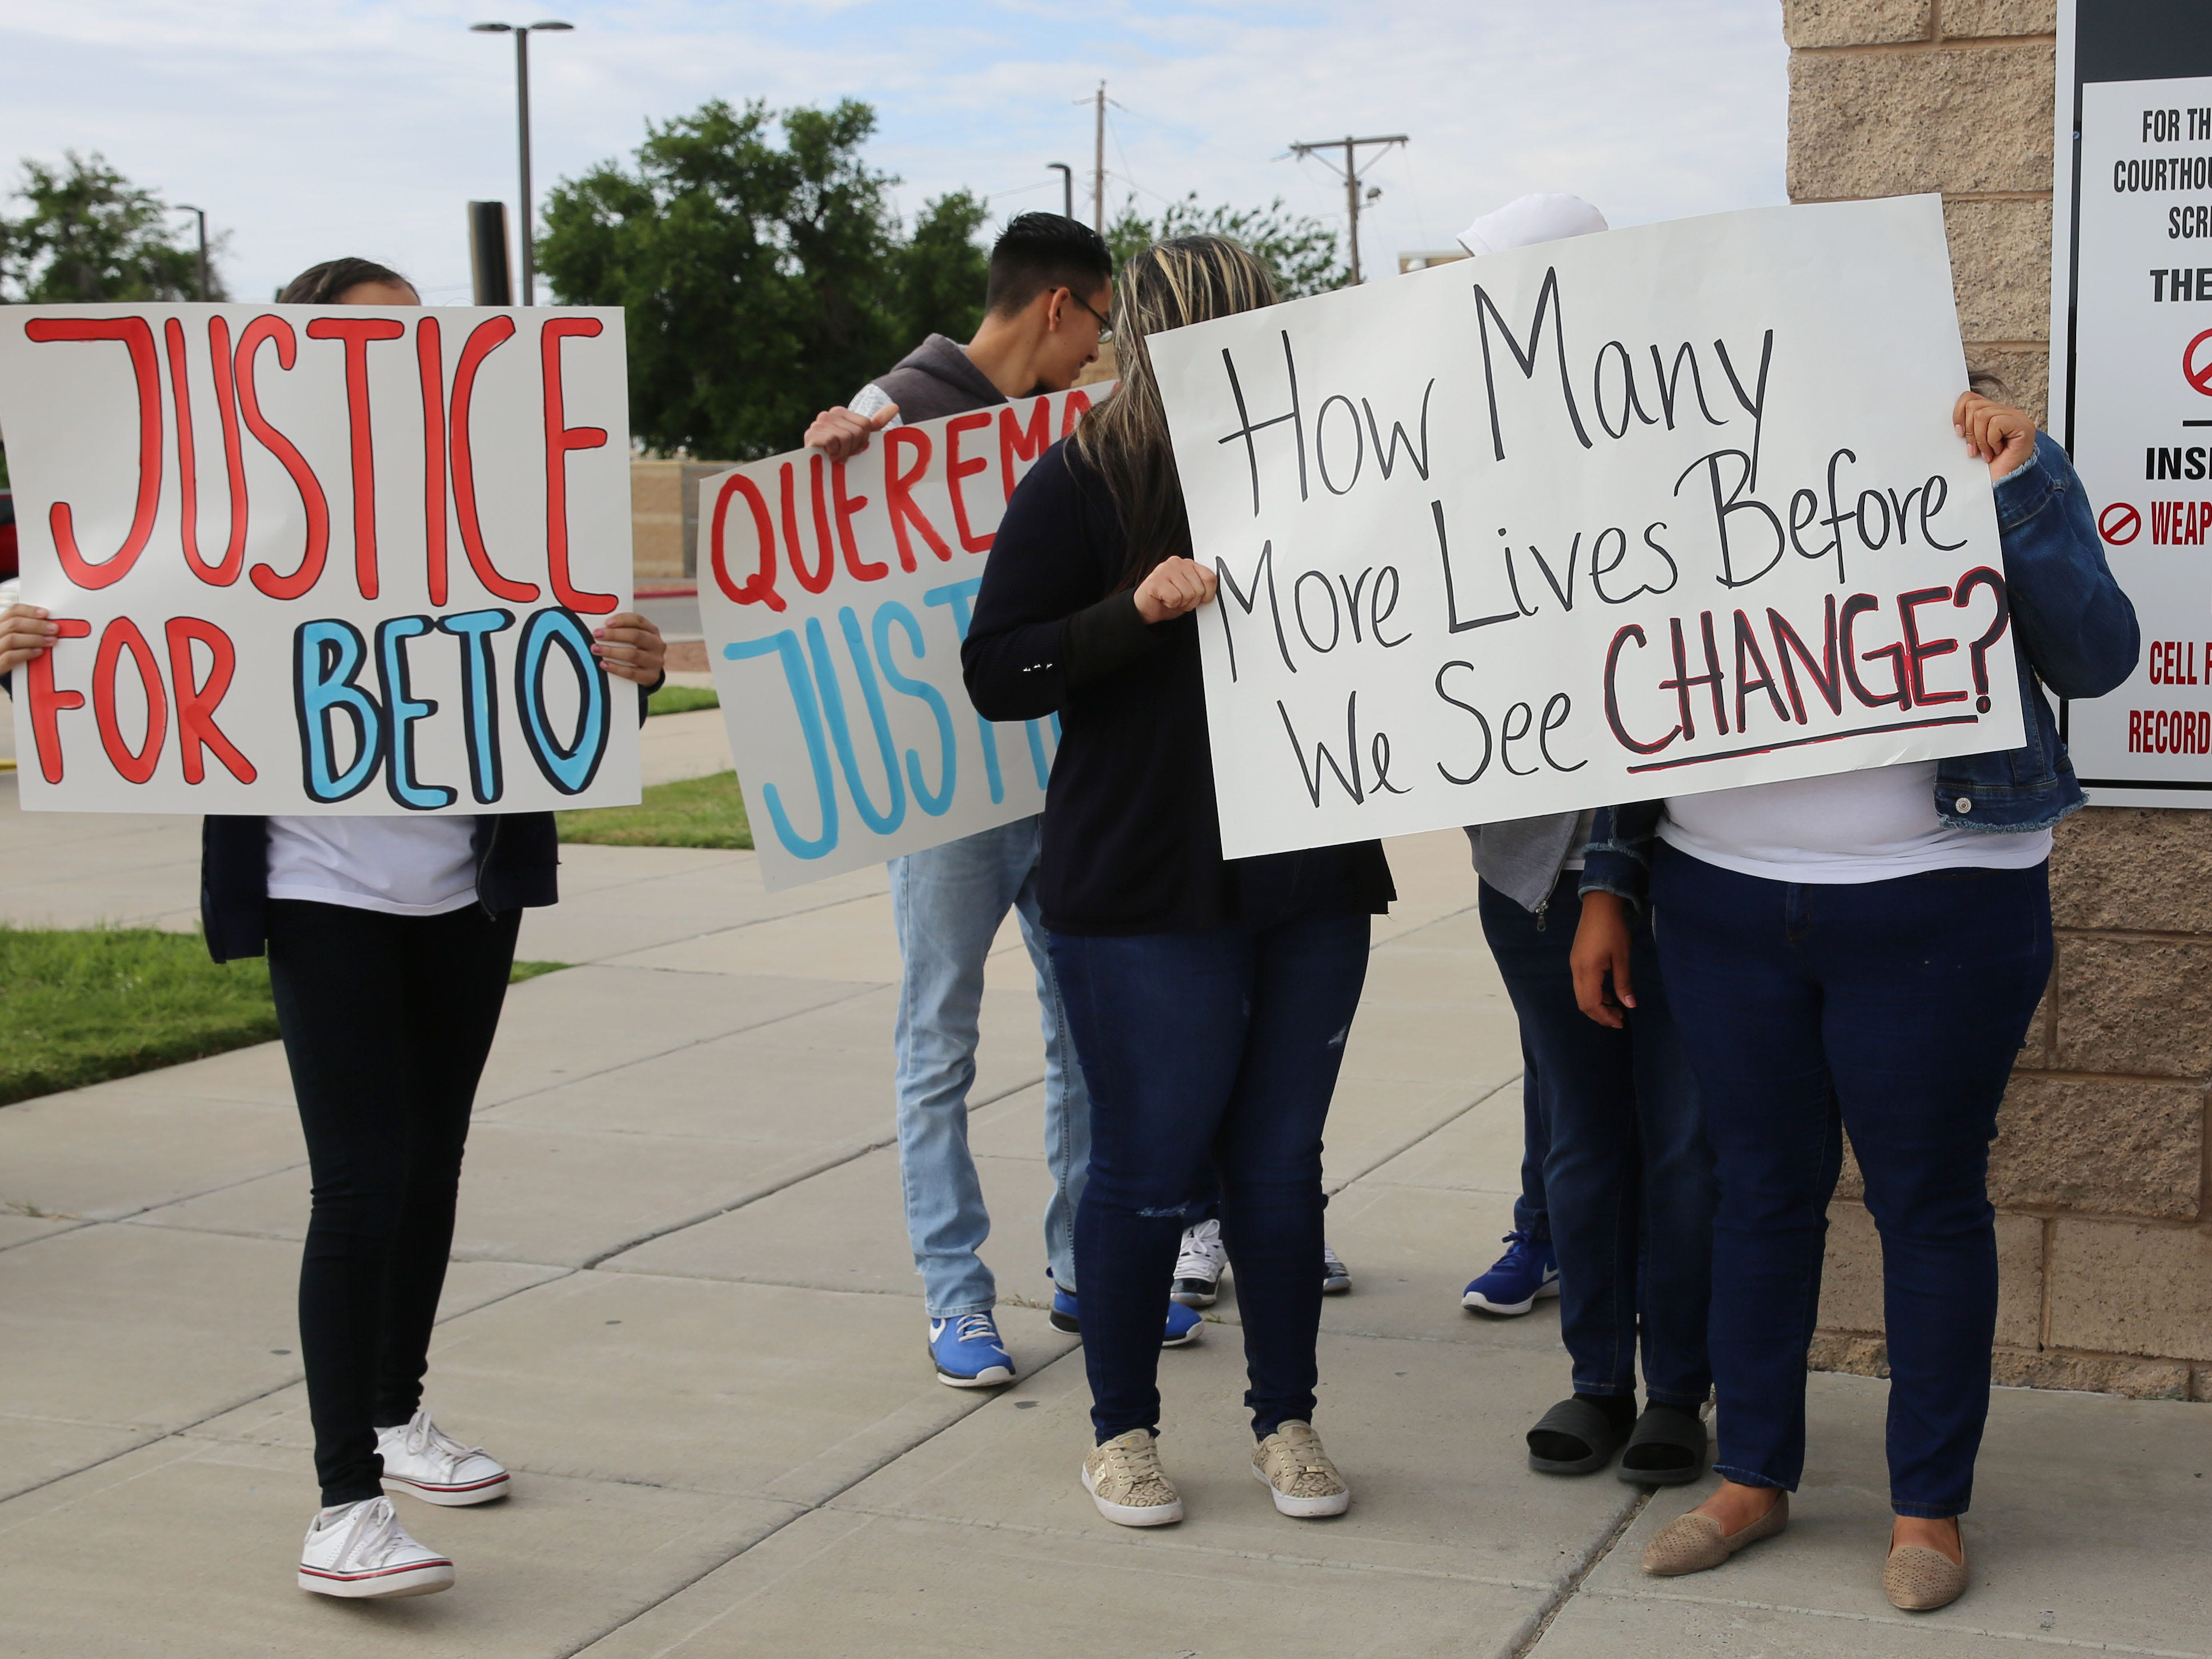 The community was outraged after Oscar Ivan Anchondo's bail was originally set at just $5,000. Since then, over 1,000 people have signed a petition, to have more reasonable bond set in the case. Anchondo is accused of killing Anthony N.M. teenager Beto Romero, in a hit-and-Run accident April 3,